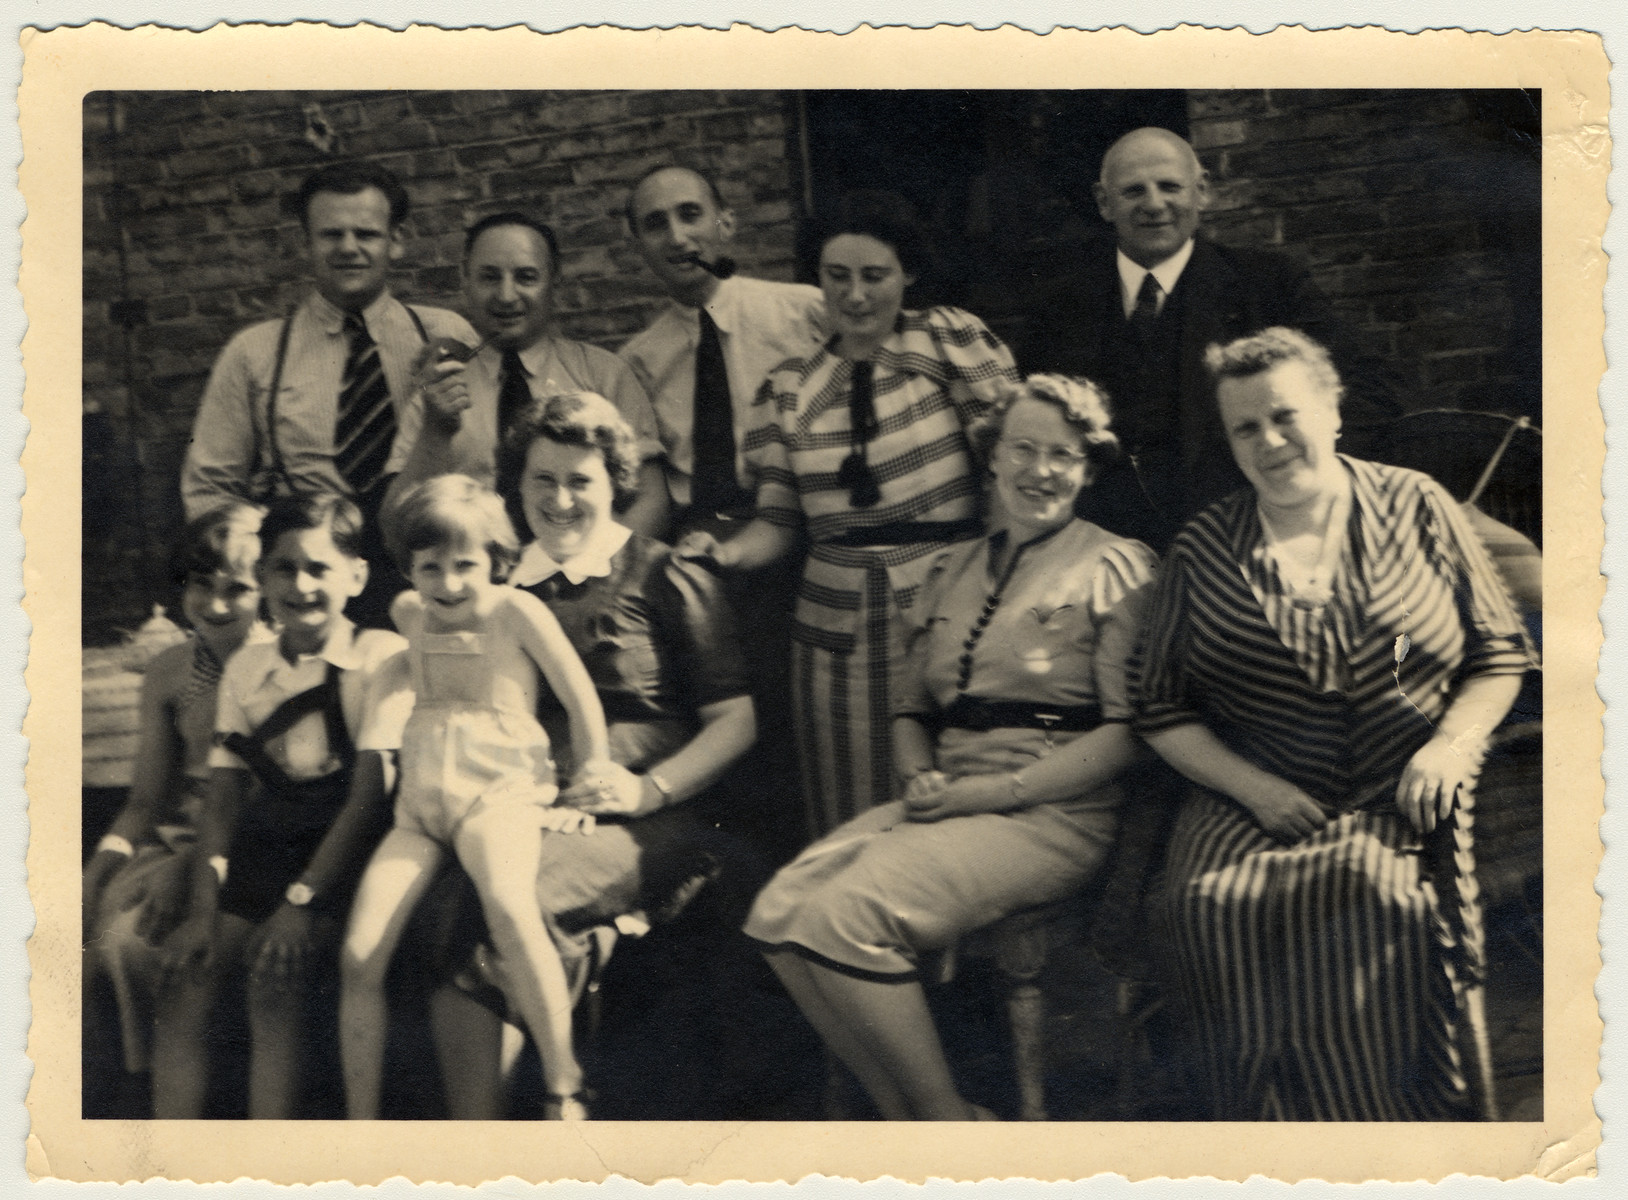 """The Heimann and Dublon families gather for a family photograph.  Front row (L to R, seated): Lore Dublon, Peter Heimann, """"Fife"""" Dublon (Lore's sister), Lili Doernberg, Ernie Dublon(mother of the girls), and unknown.  Rear Row (L to R, standing): Unknown, Solomon Heimann (father of Peter), Willy Dublon (husband of Ernie), Unknown, Unknown."""